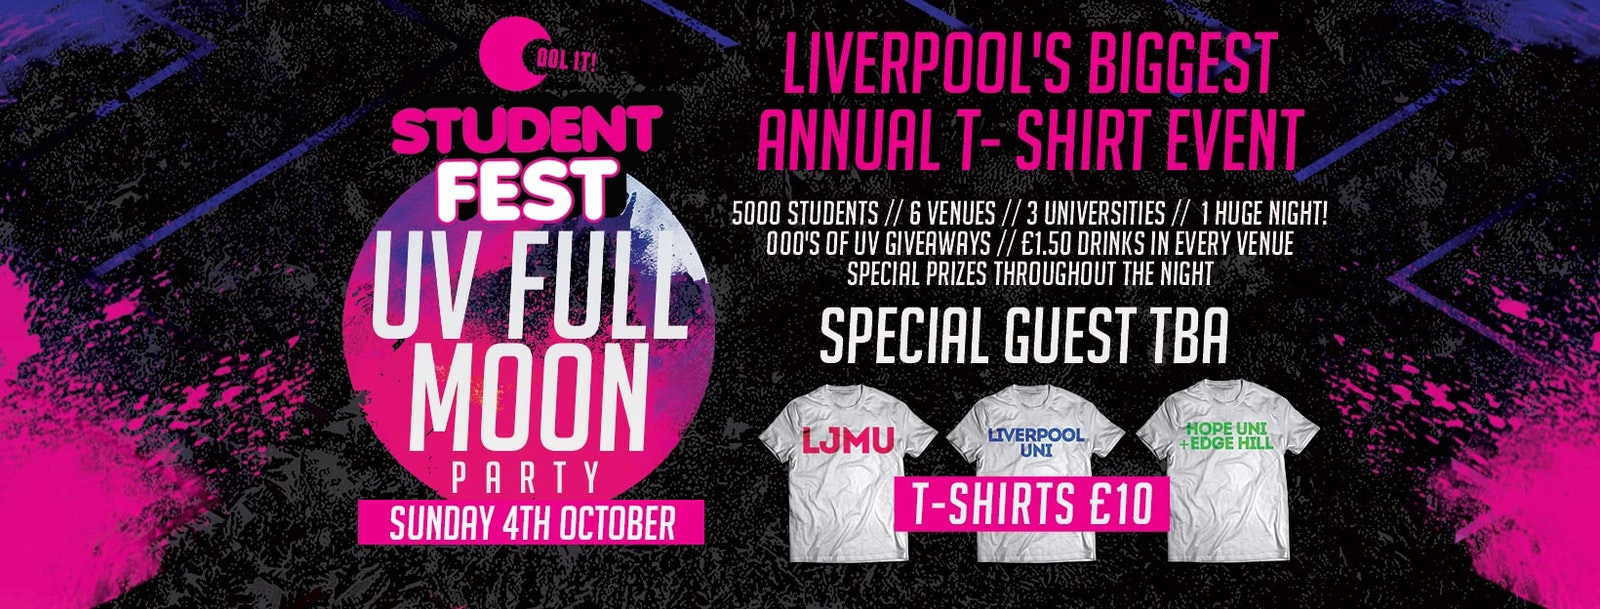 STUDENT FEST 2020 / The UV Full Moon Party / Special Guest TBA